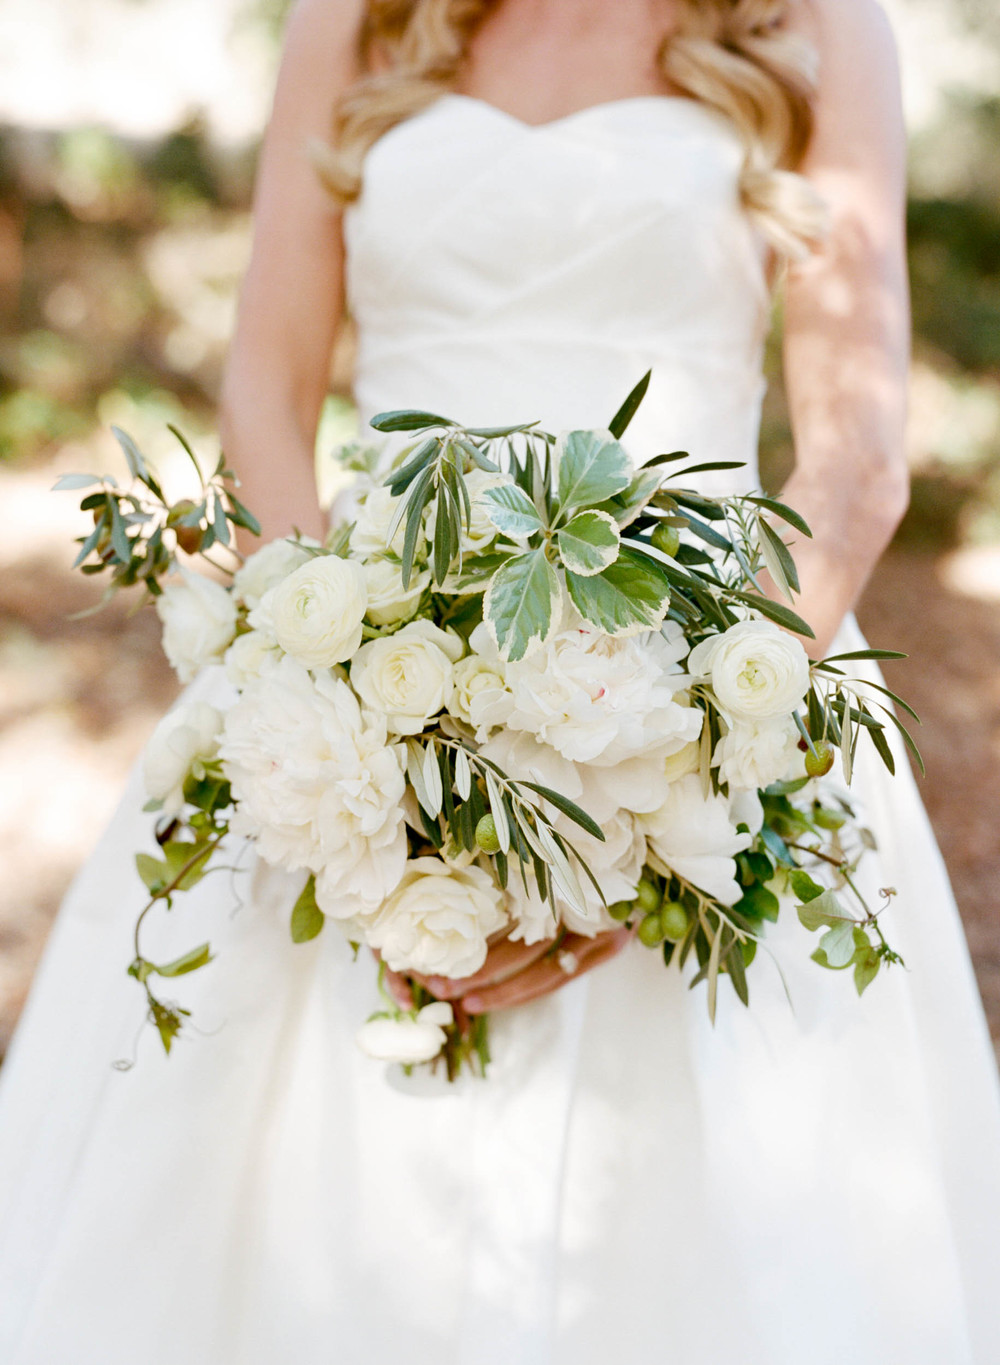 Bride's olive and white floral bouquet; Sylvie Gil Photography